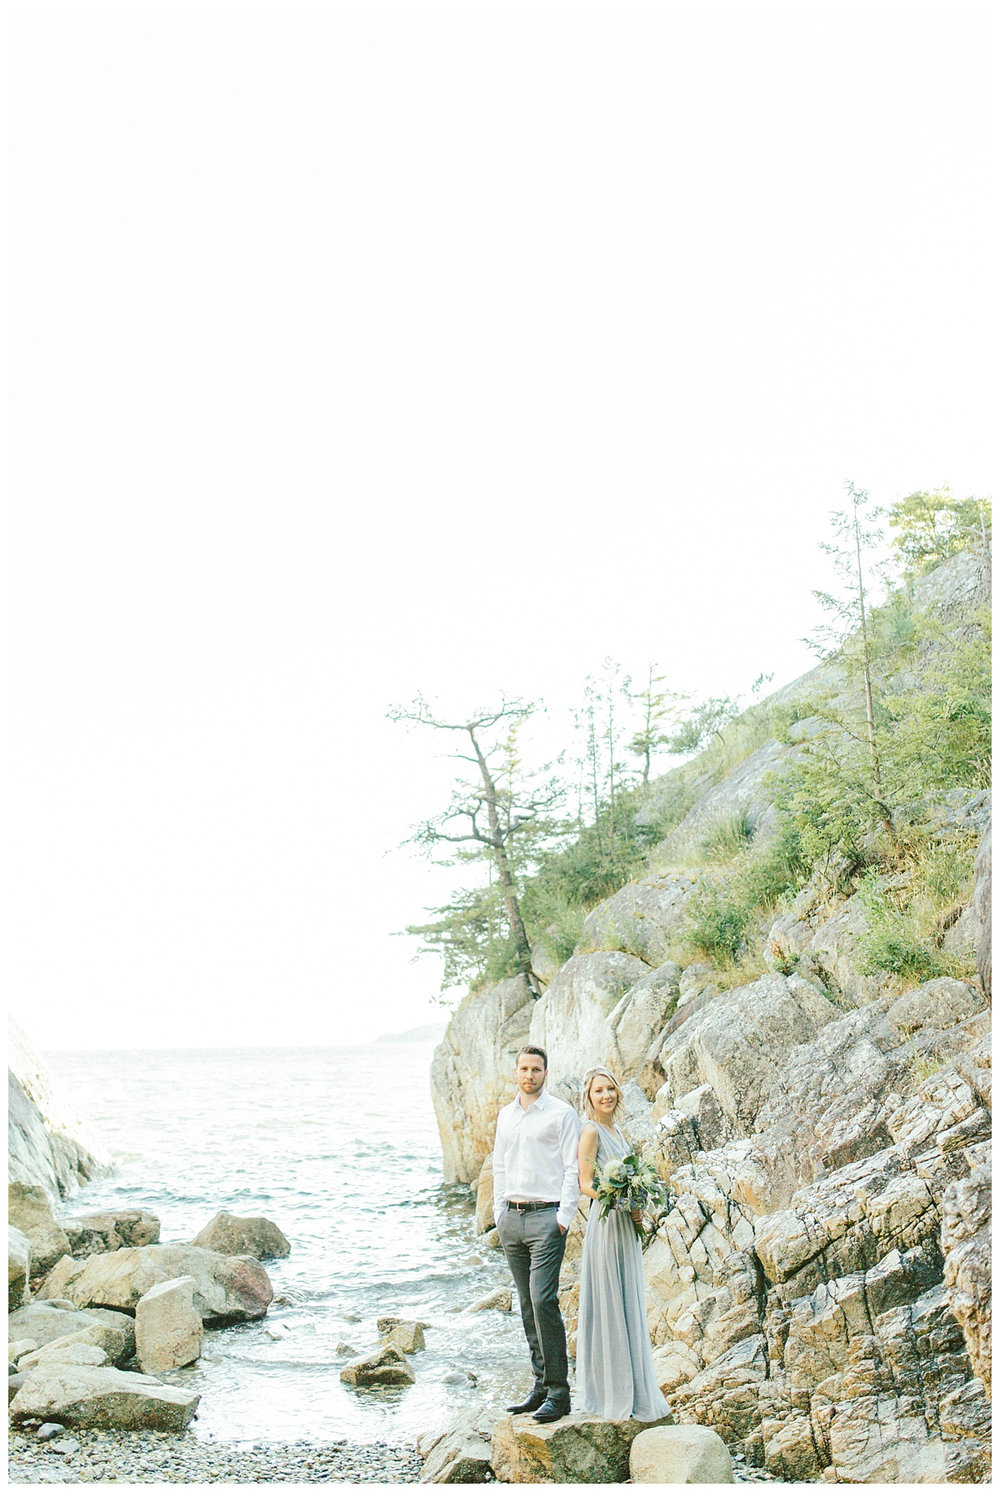 Hong Kong Fine Art Wedding Prewedding Photographer Mattie C. 00005.jpg